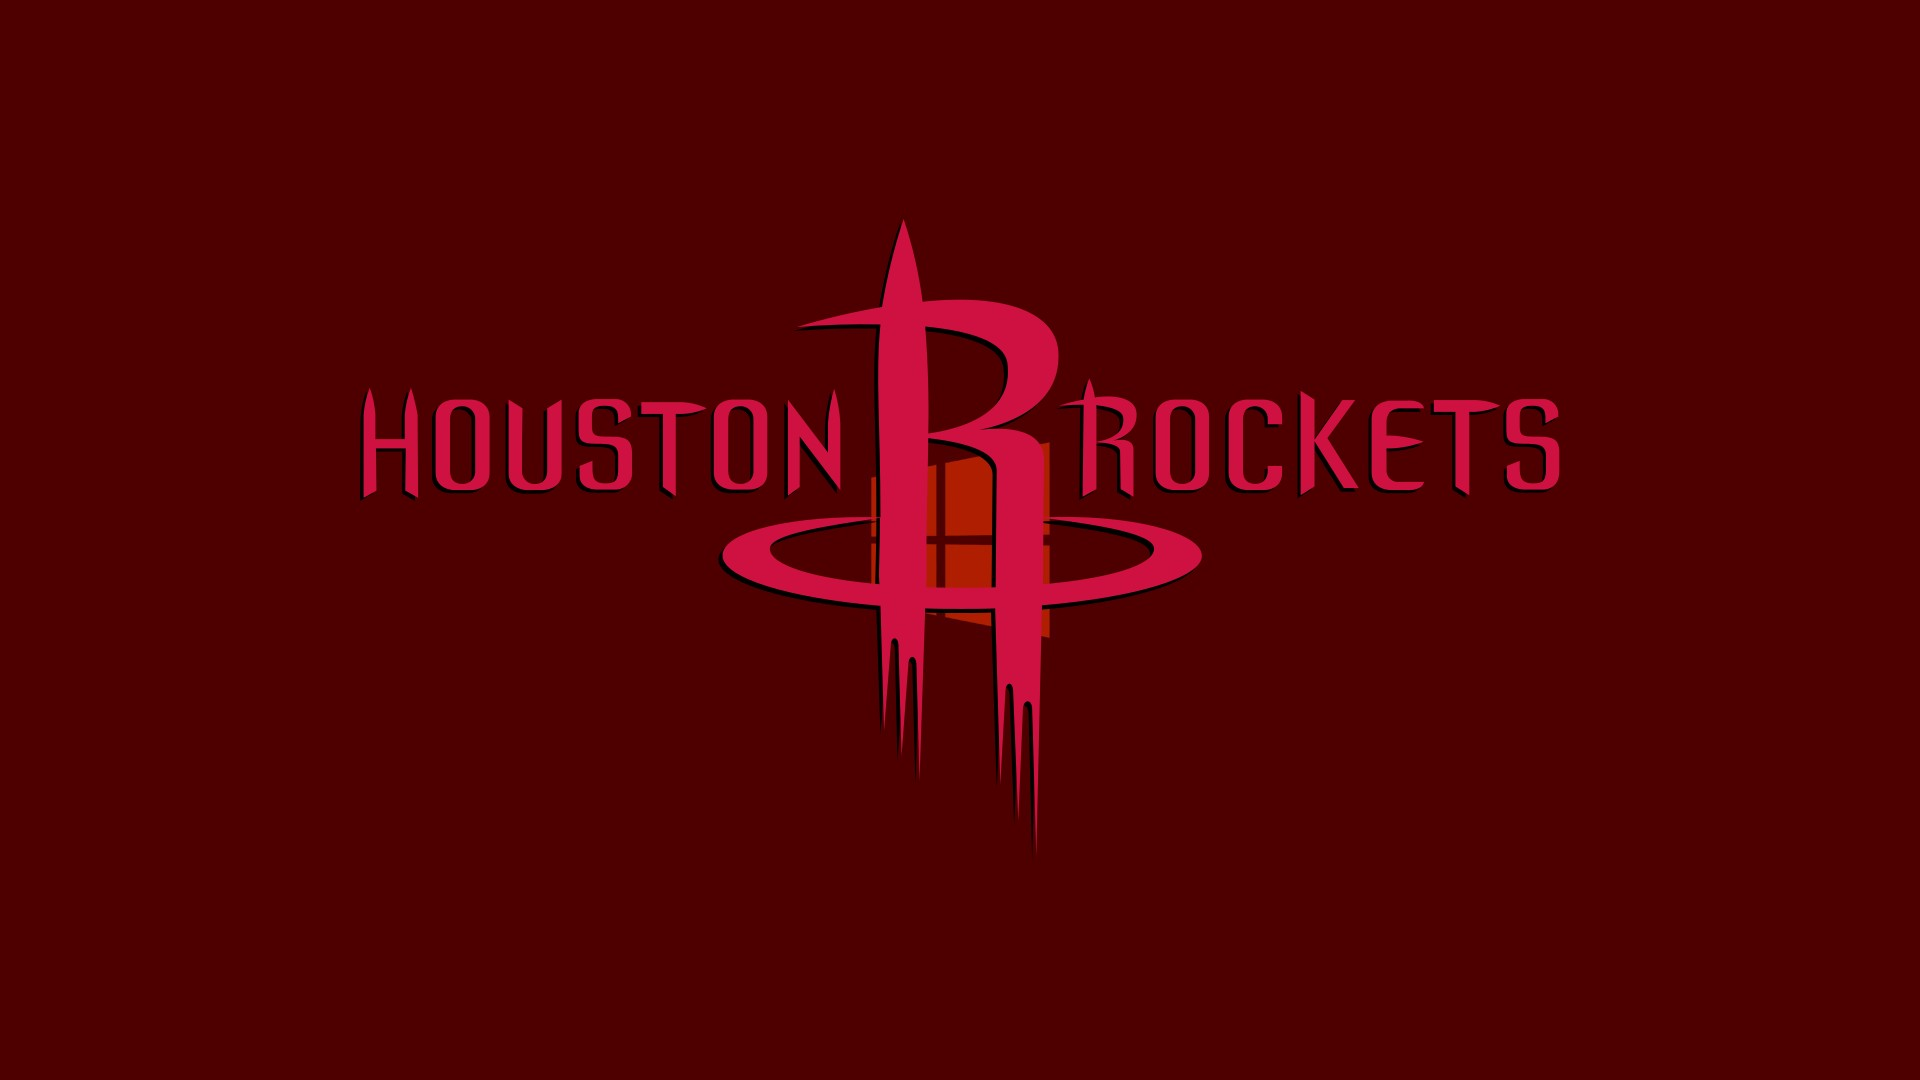 Best Wallpapers For Mobile Hd Free Download Houston Rockets For Pc Wallpaper 2019 Basketball Wallpaper